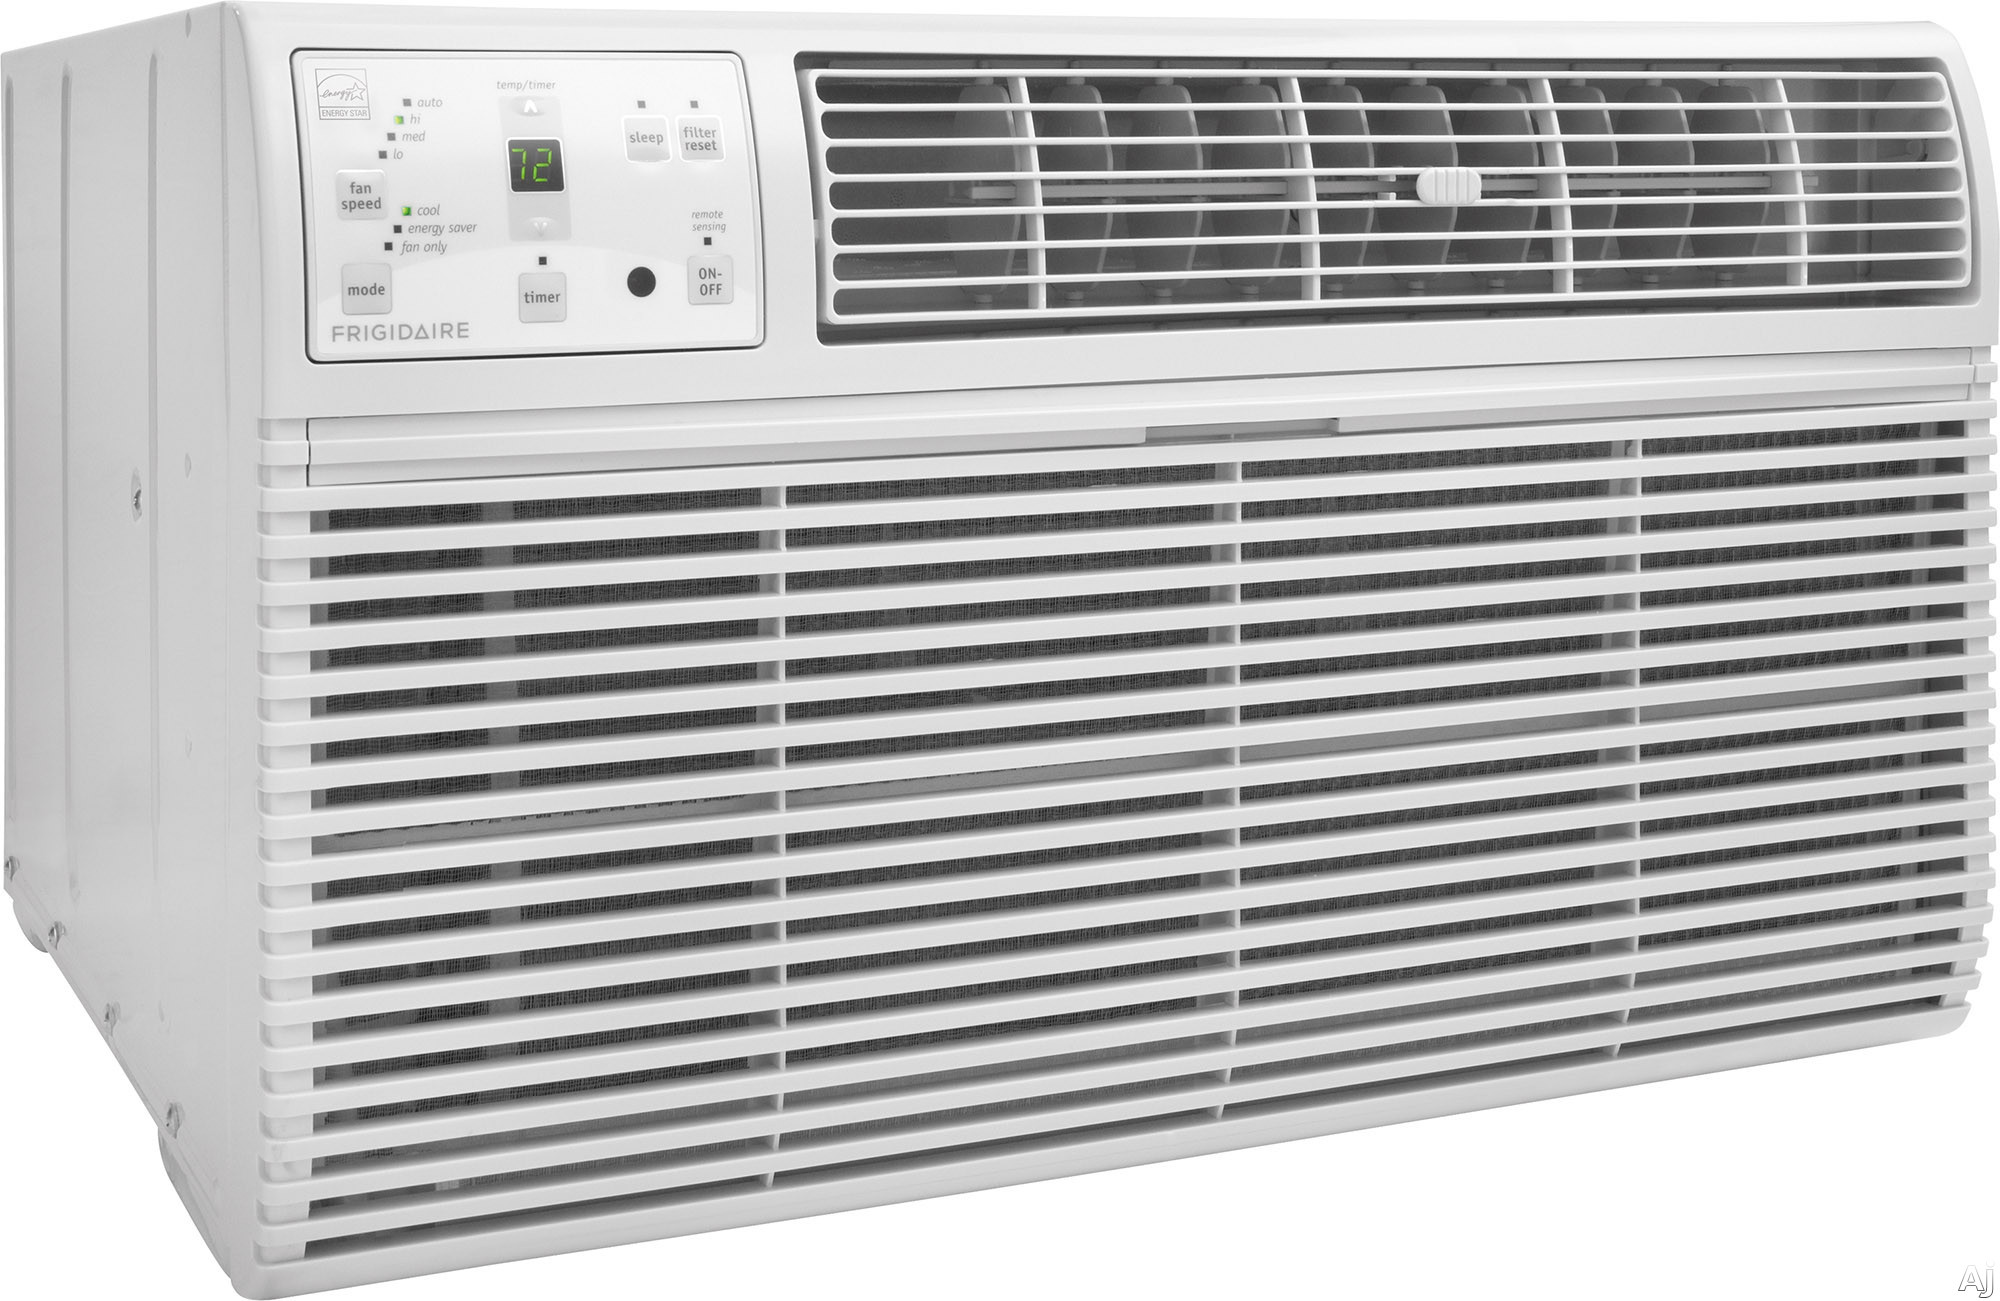 Frigidaire FFTA0833S1 8,000 BTU Room Air Conditioner with 270 CFM, 3 Fan Speeds, Effortless Remote Temperature Control, Energy Saver Mode, Effortless Clean Filter, Effortless Restart, Ready-Select Con